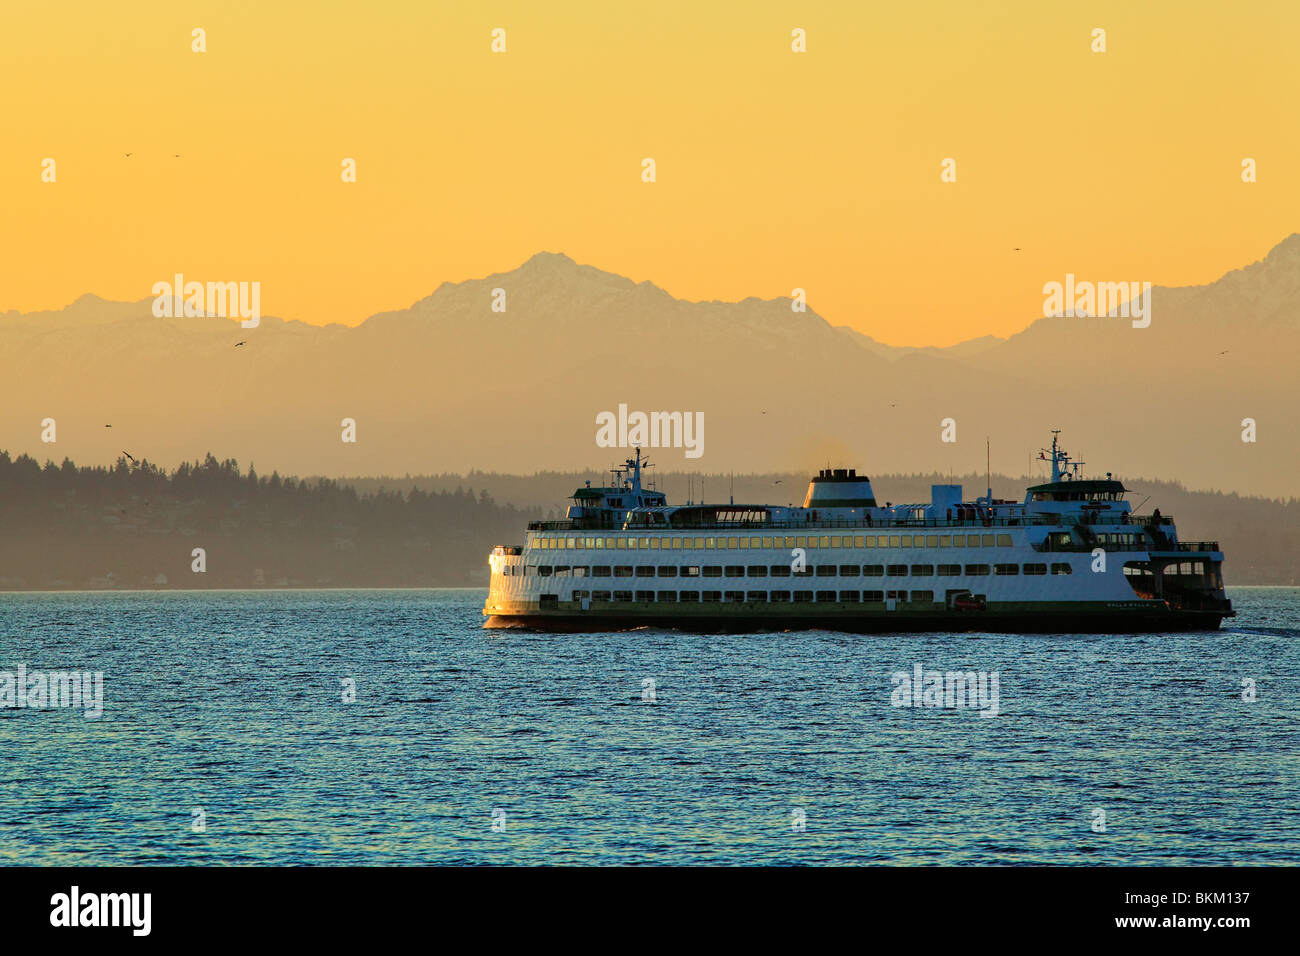 Washington state ferry in Elliott Bay with the Olympic mountains in the distance - Stock Image